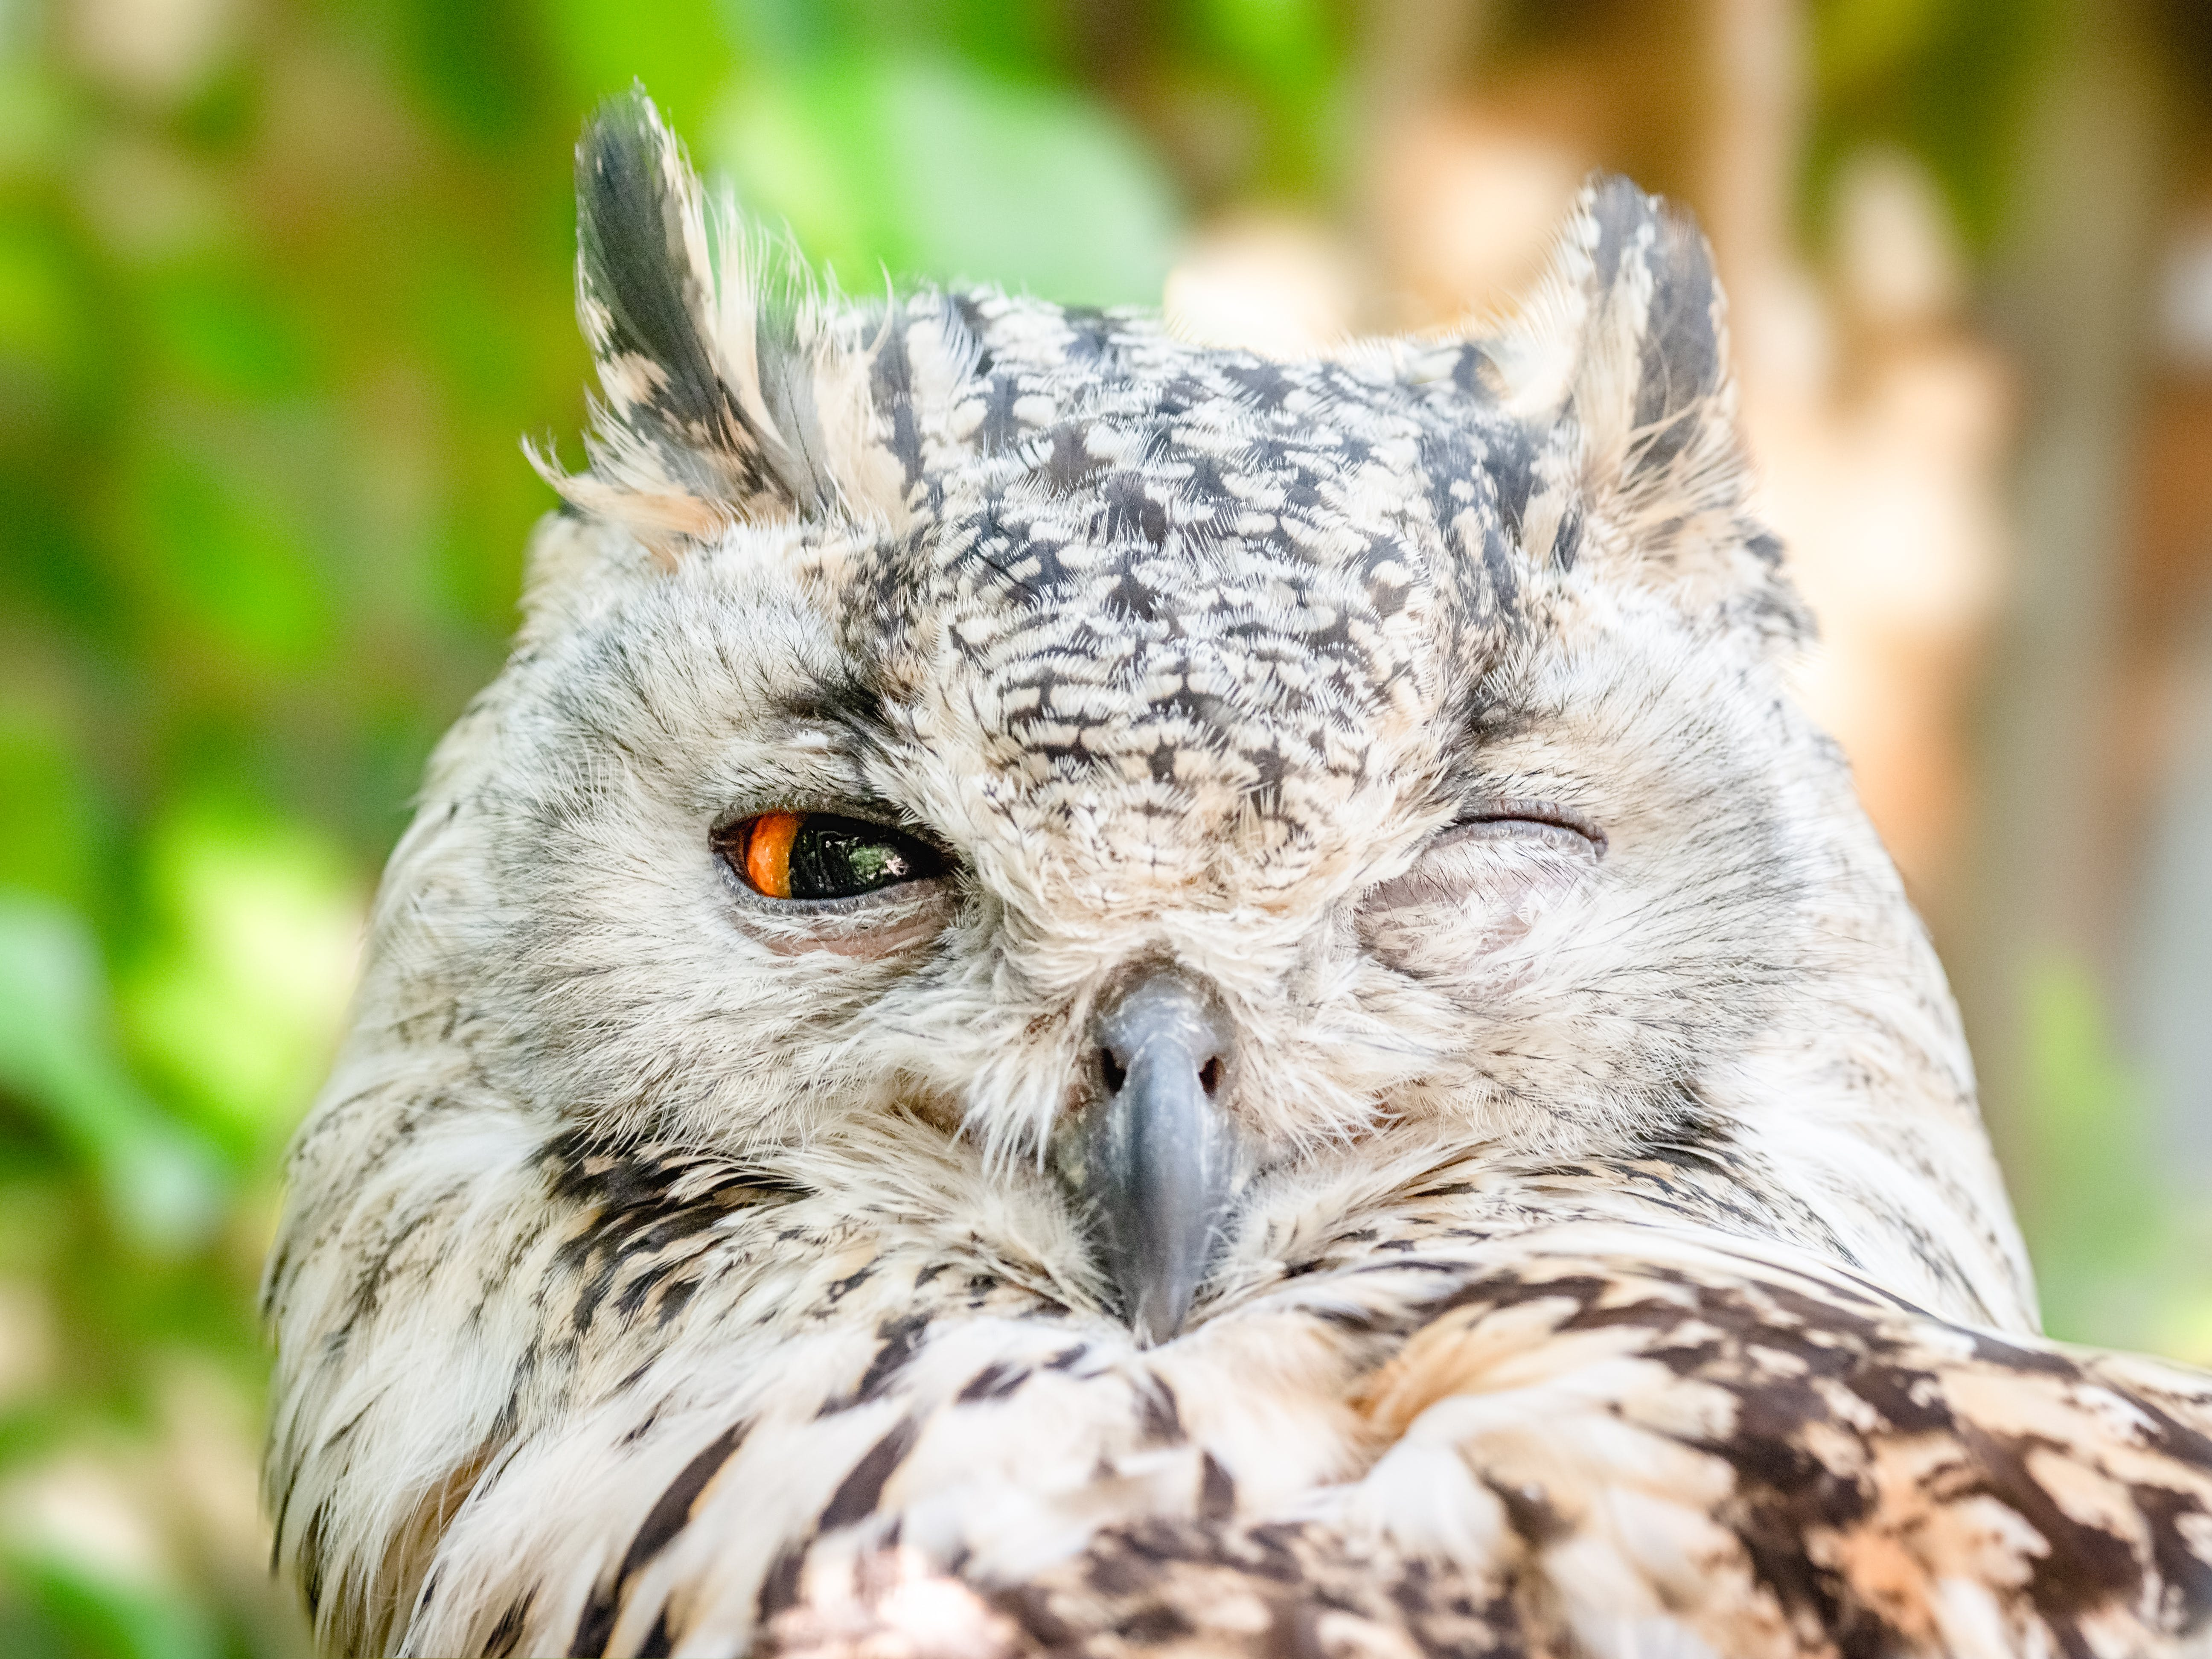 Close-up Photo of Owl with One Eye Open